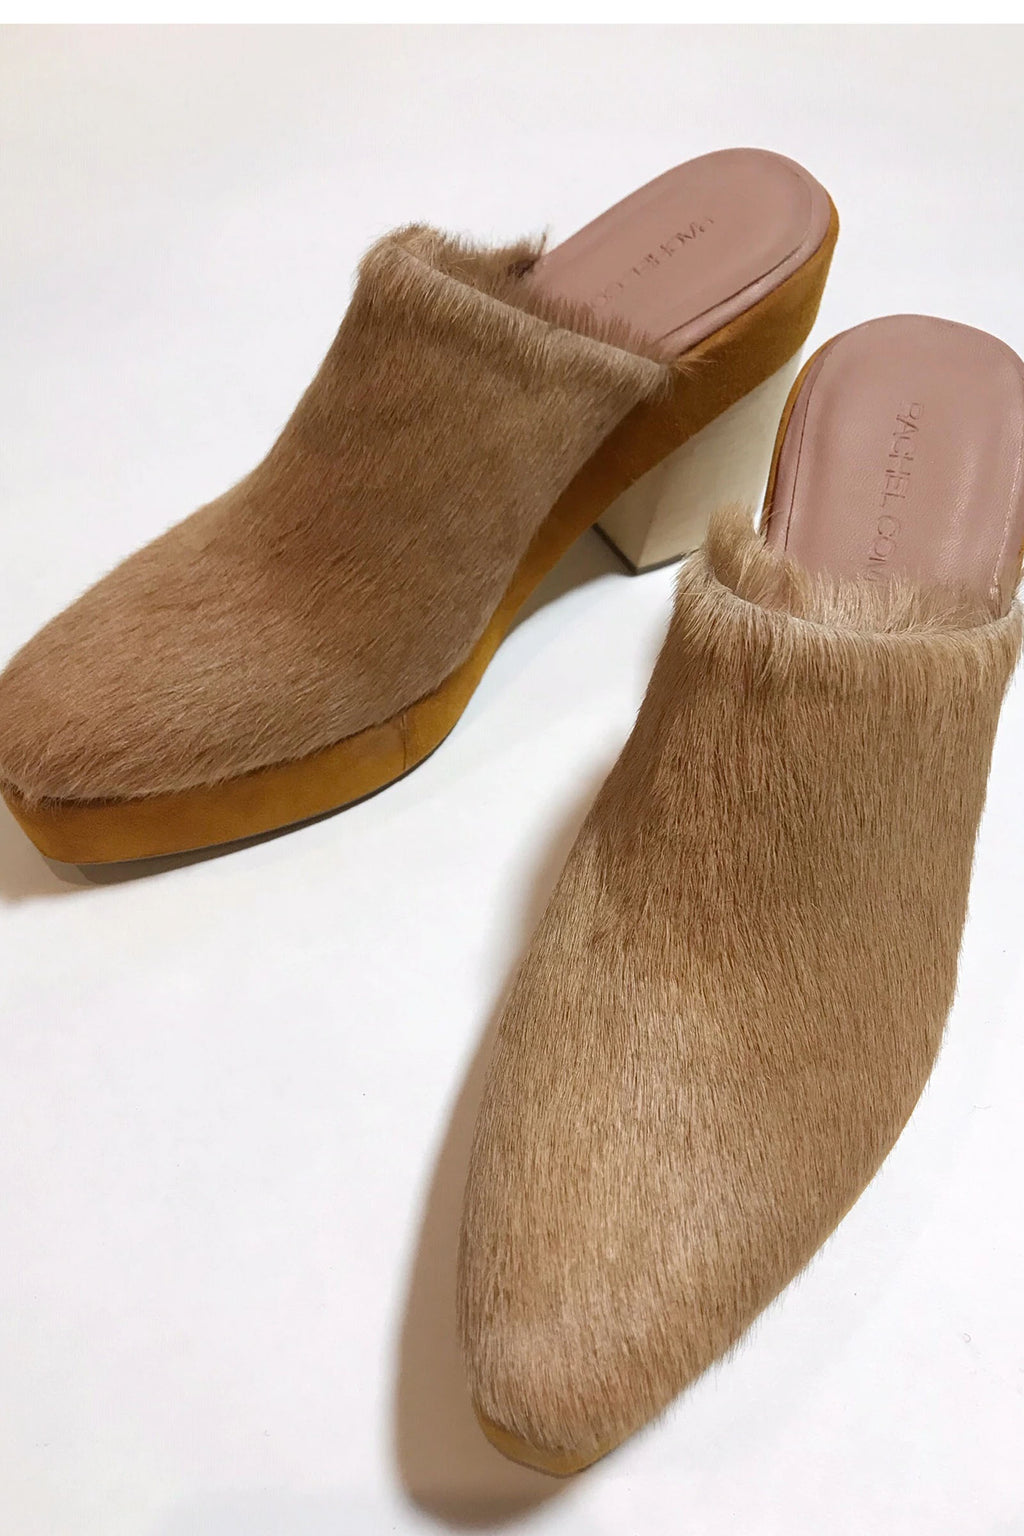 Rachel Comey Cow Leather Bandy Clog In Camel